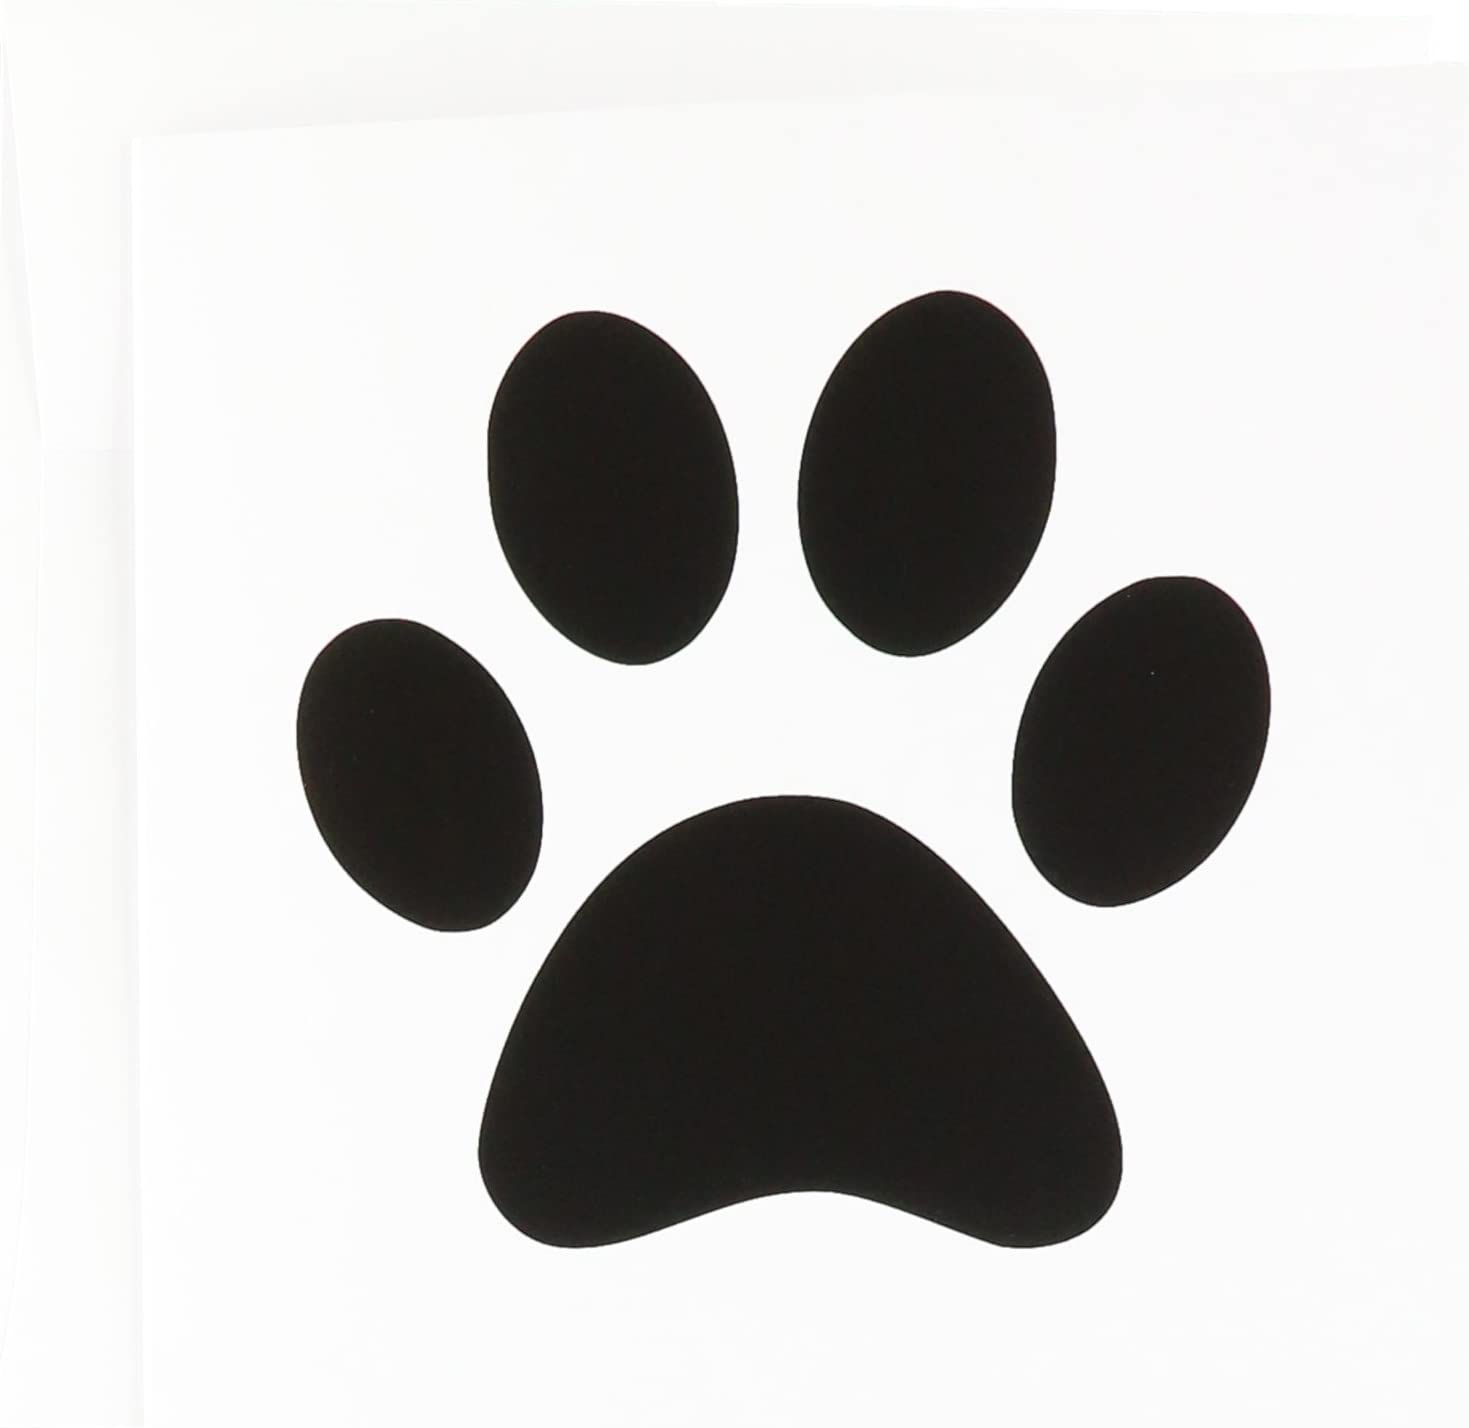 amazon.com : black paw print on white - cartoon animal foot print -  greeting cards, 6 x 6 inches, set of 12 (gc_161514_2) : office products  amazon.com